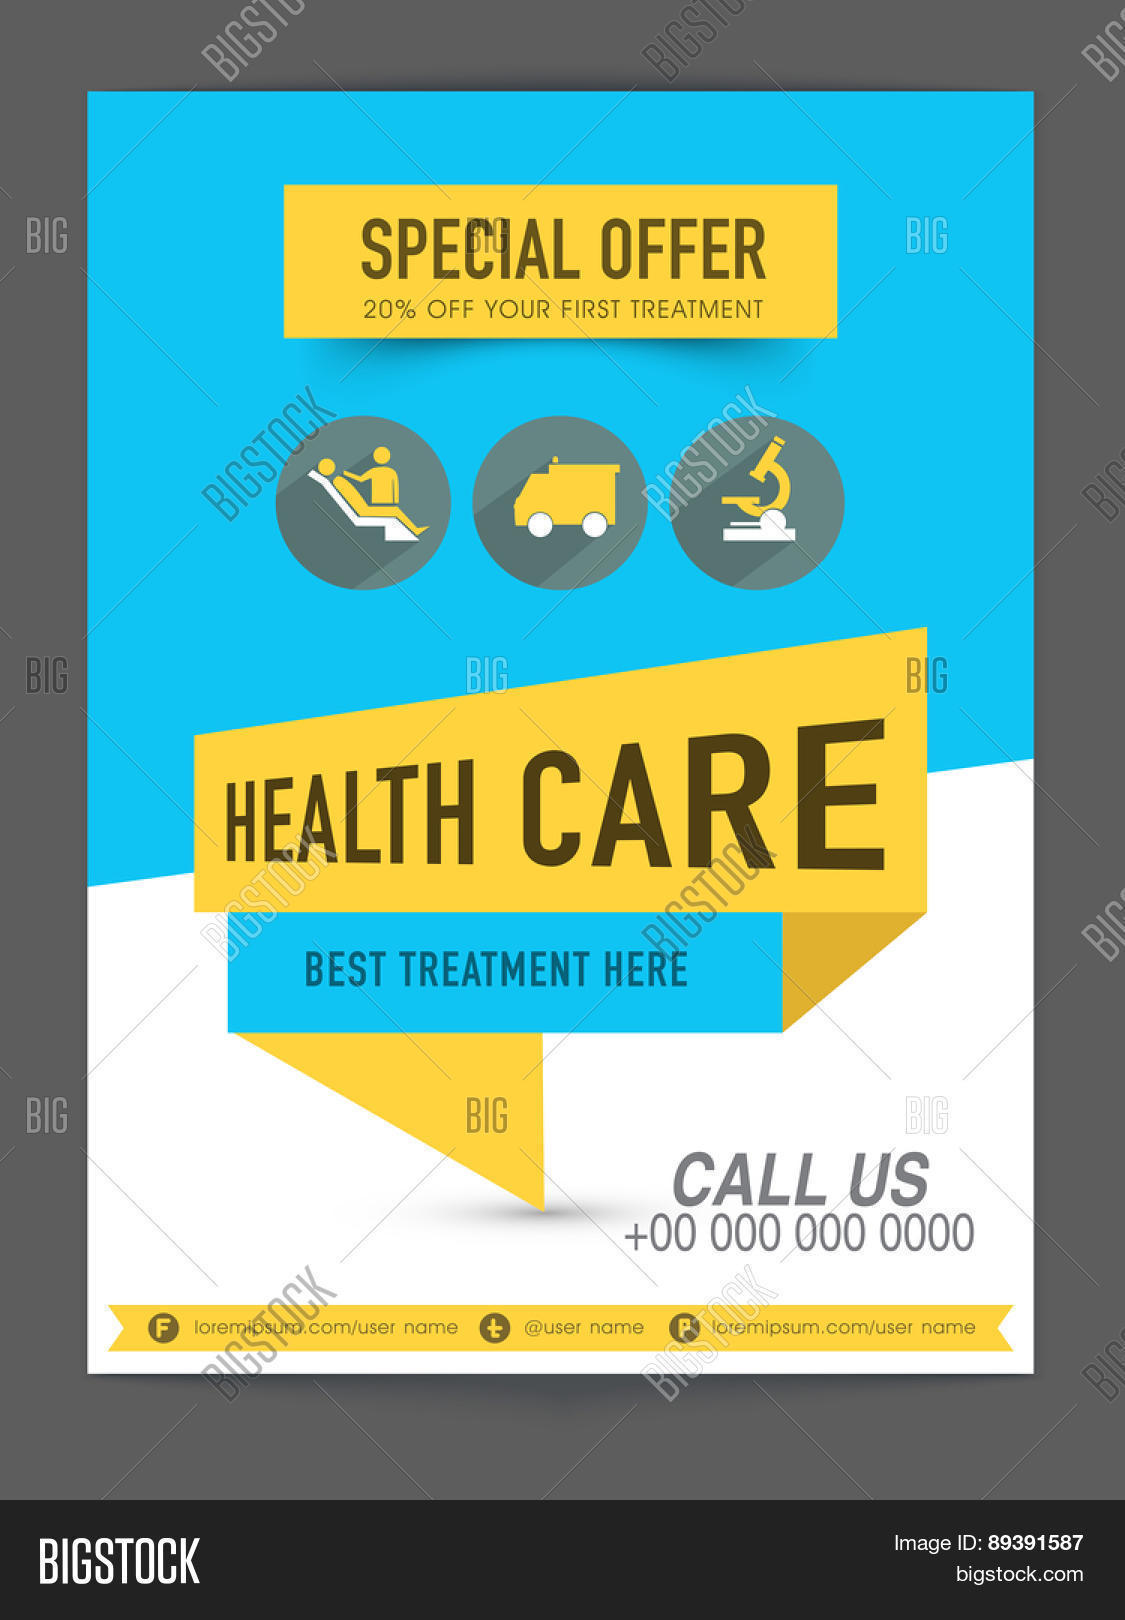 health care flyer presentation showing special discount offer on health care flyer presentation showing special discount offer on first treatment medical icons